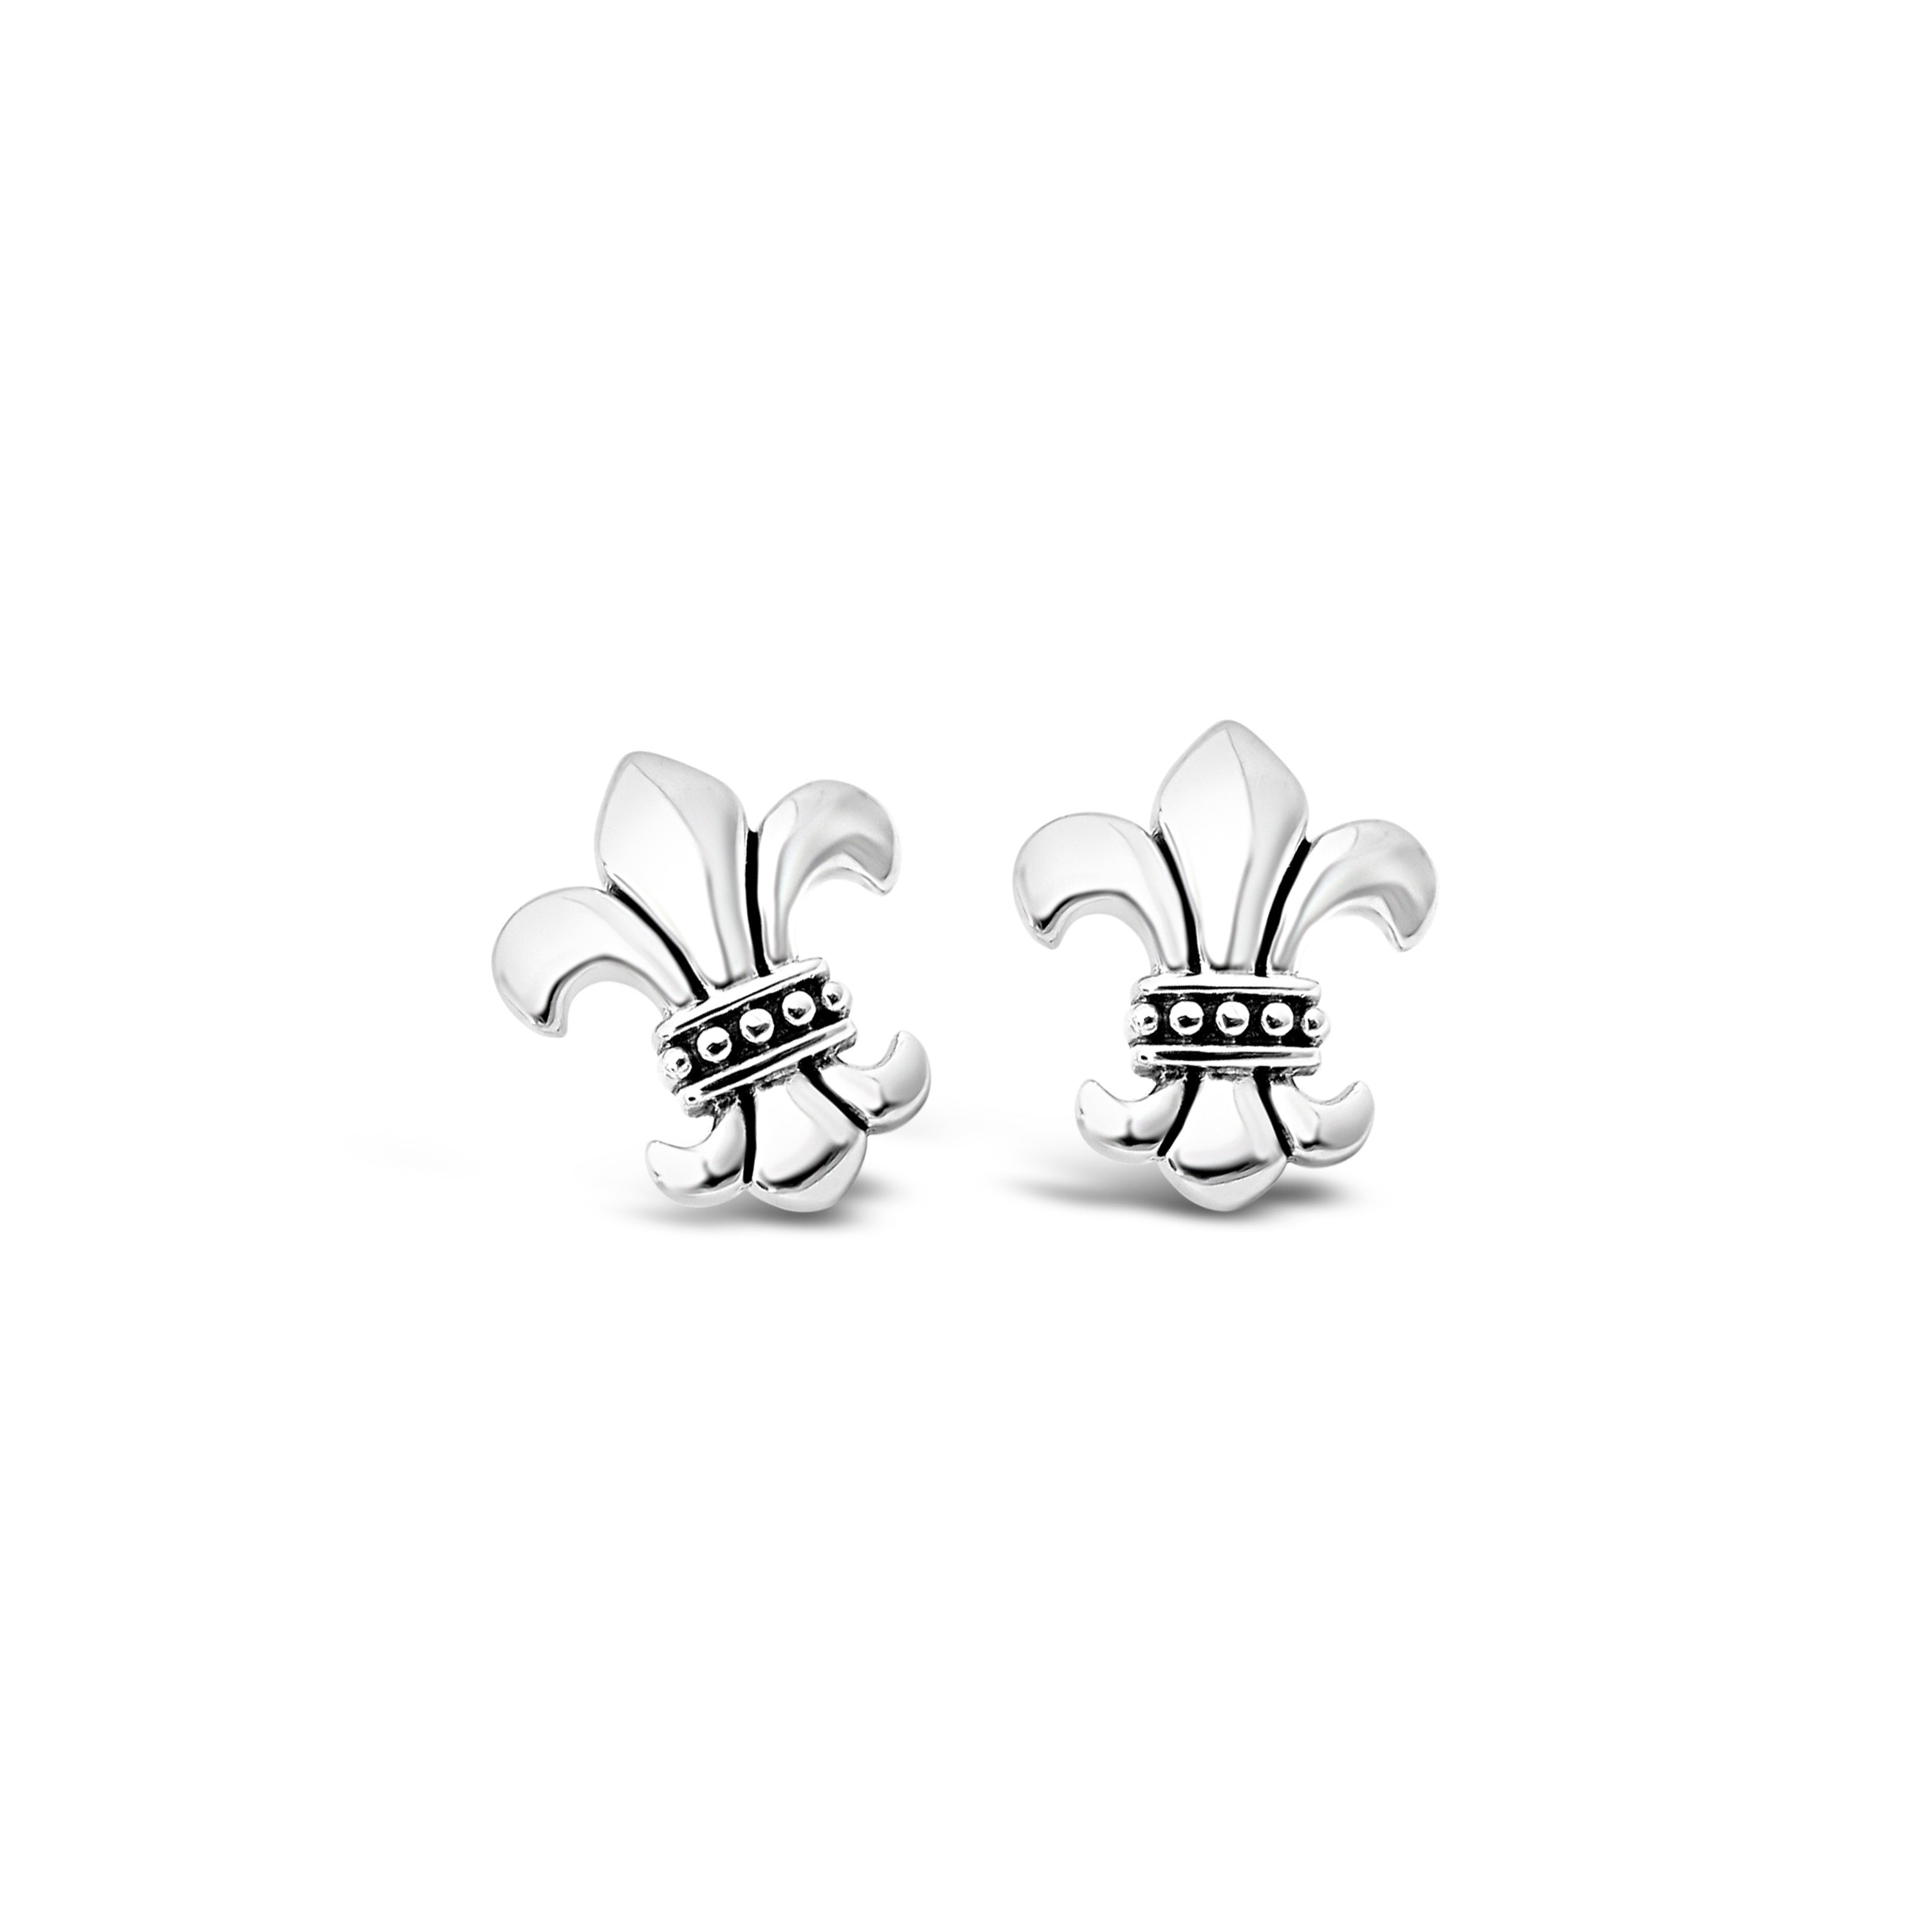 Strength & Courage Fleur de Lis Dainty Earrings